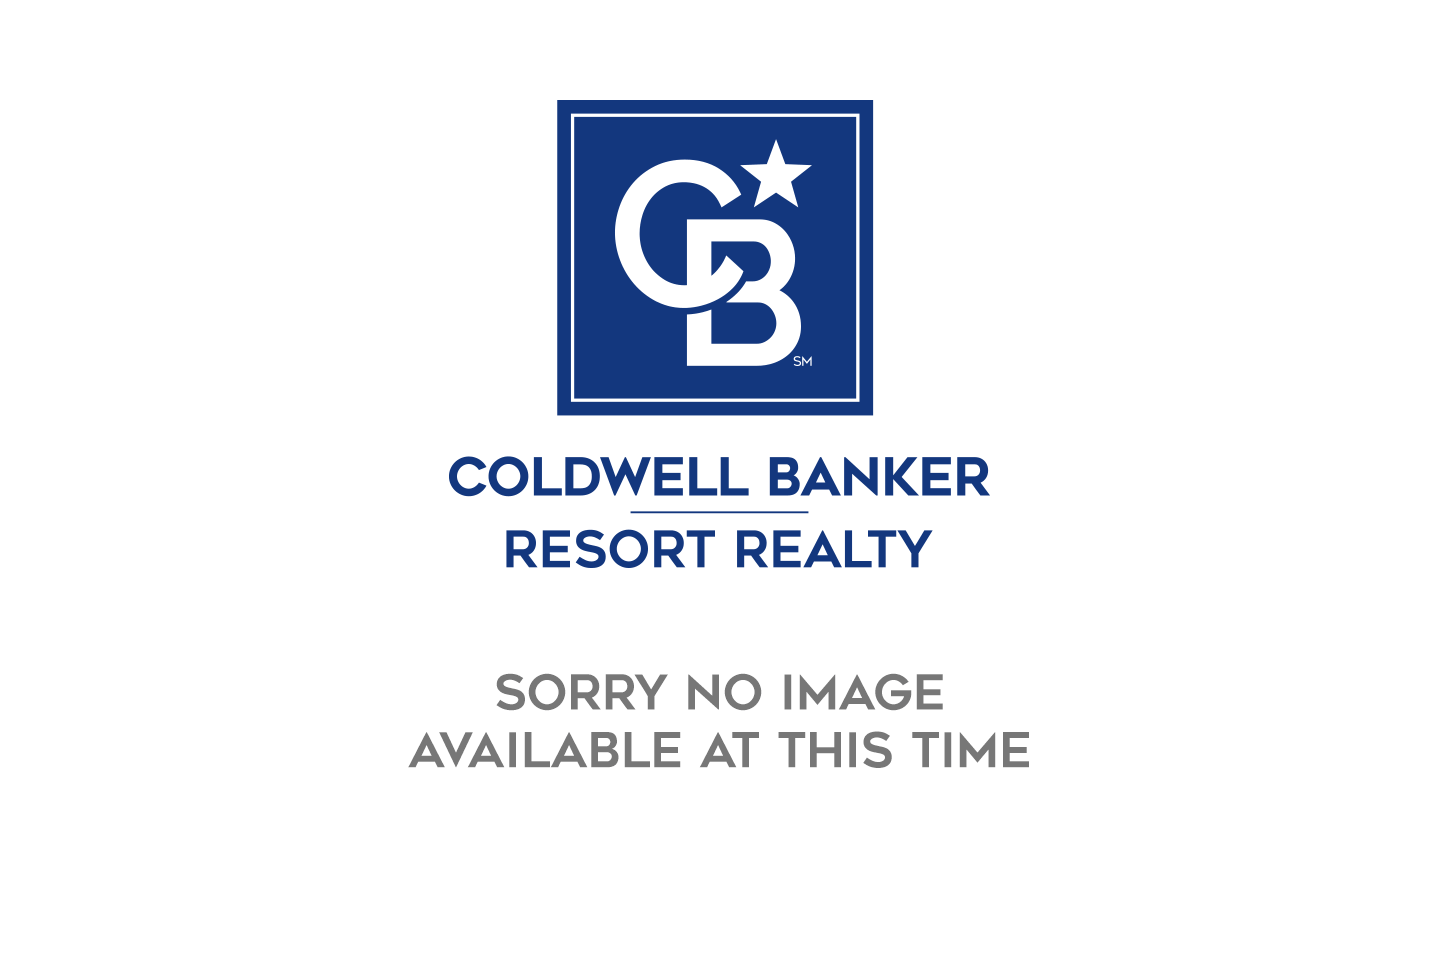 noimage Lincoln - Coldwell Banker Resort Realty